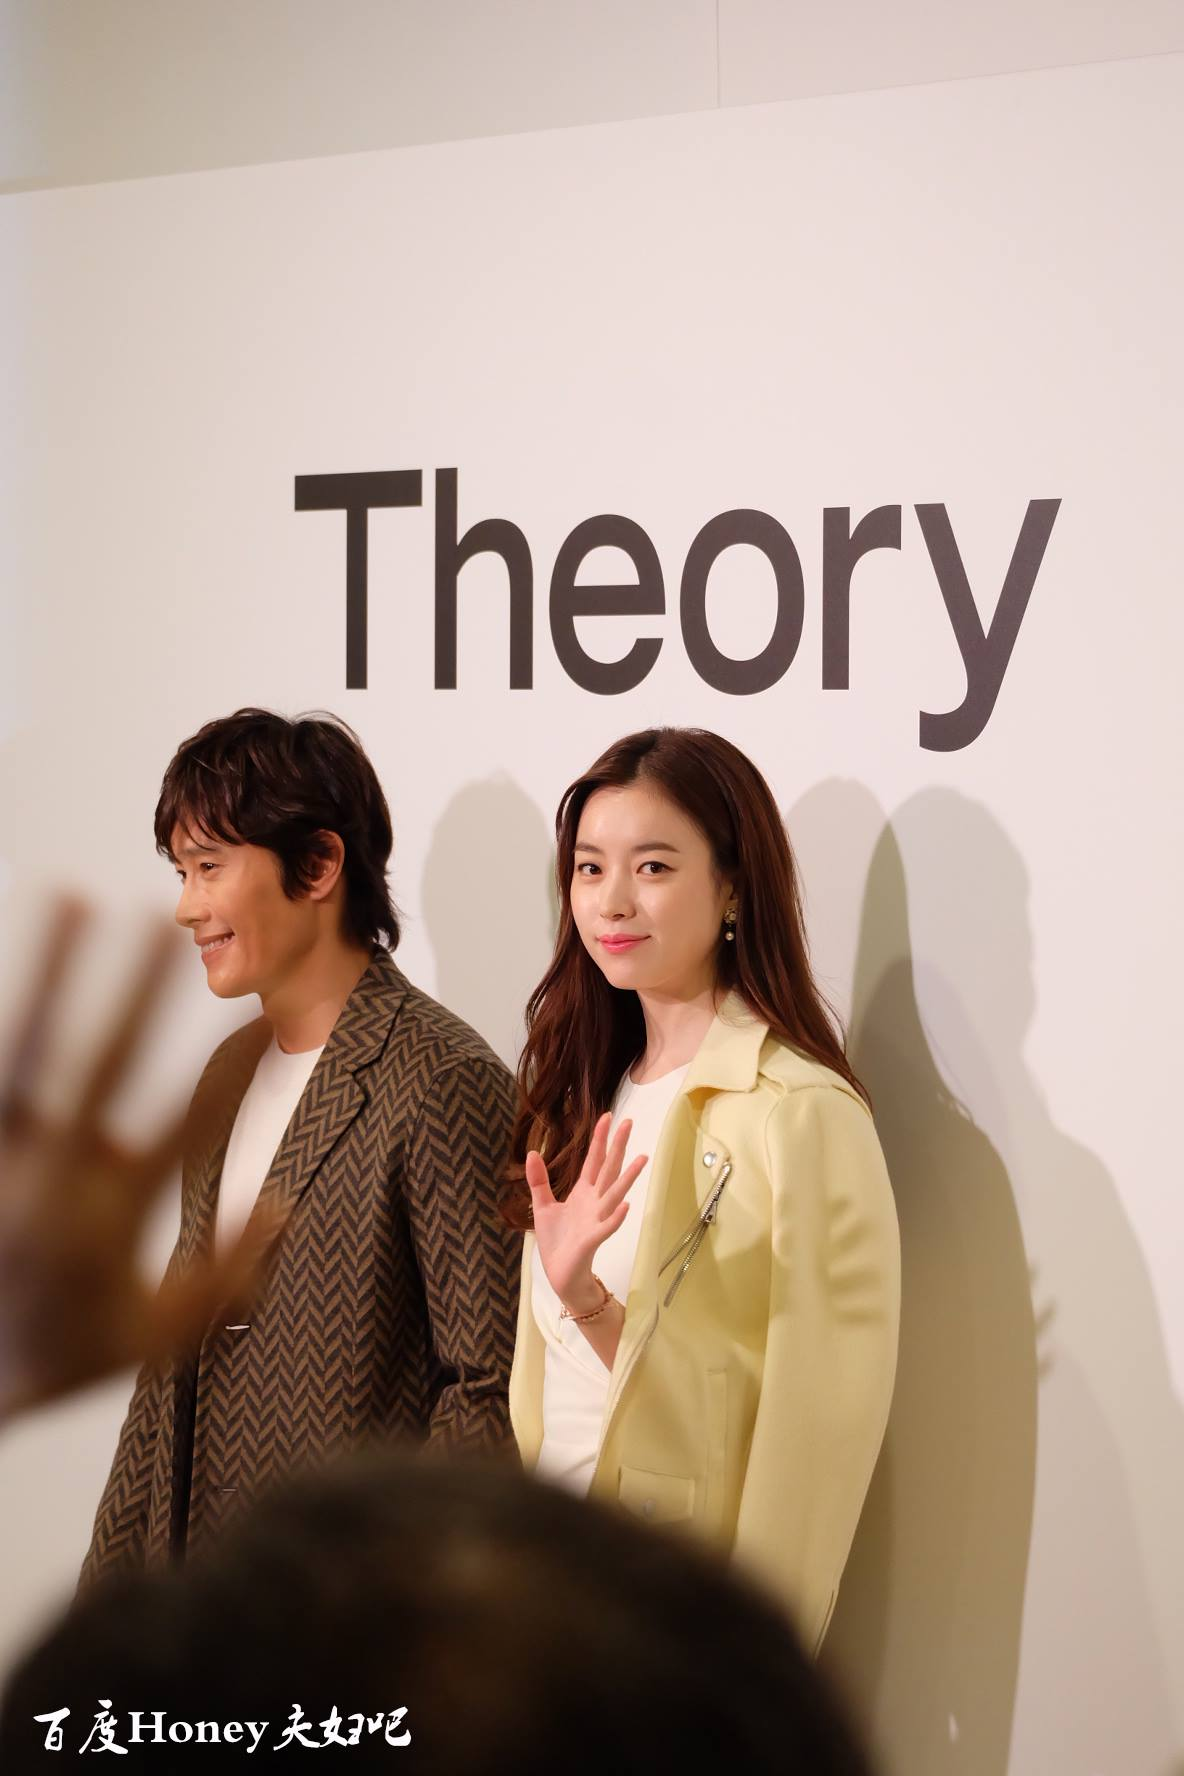 Lee Byung Hun and Han Hyo Joo at the opening event.